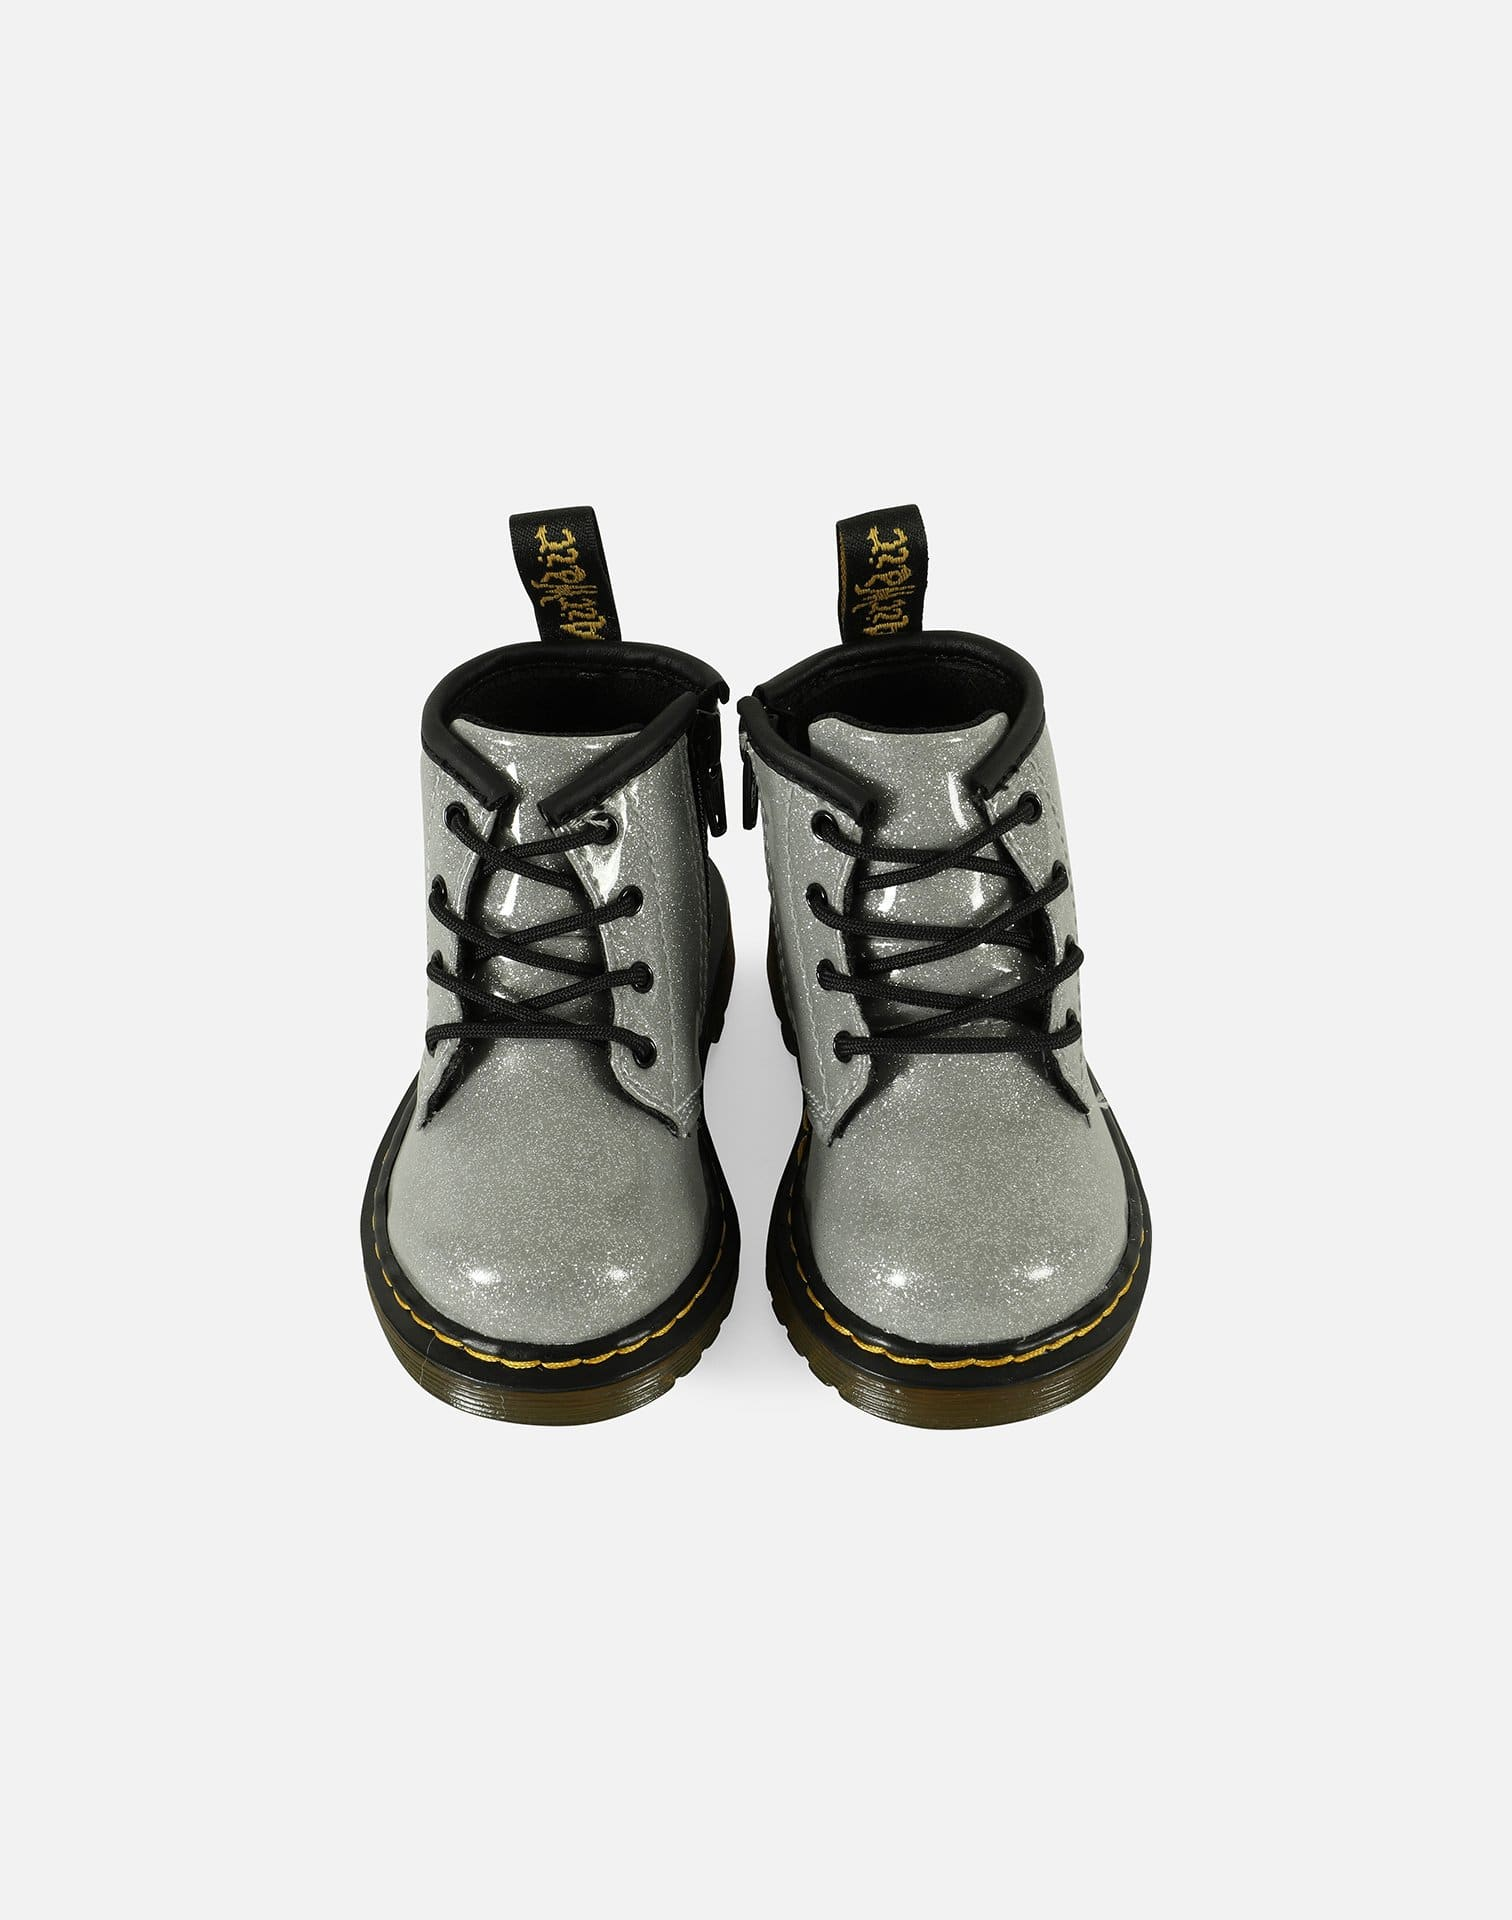 Dr. Martens 1460 Flitter Patent Leather Boots Infant